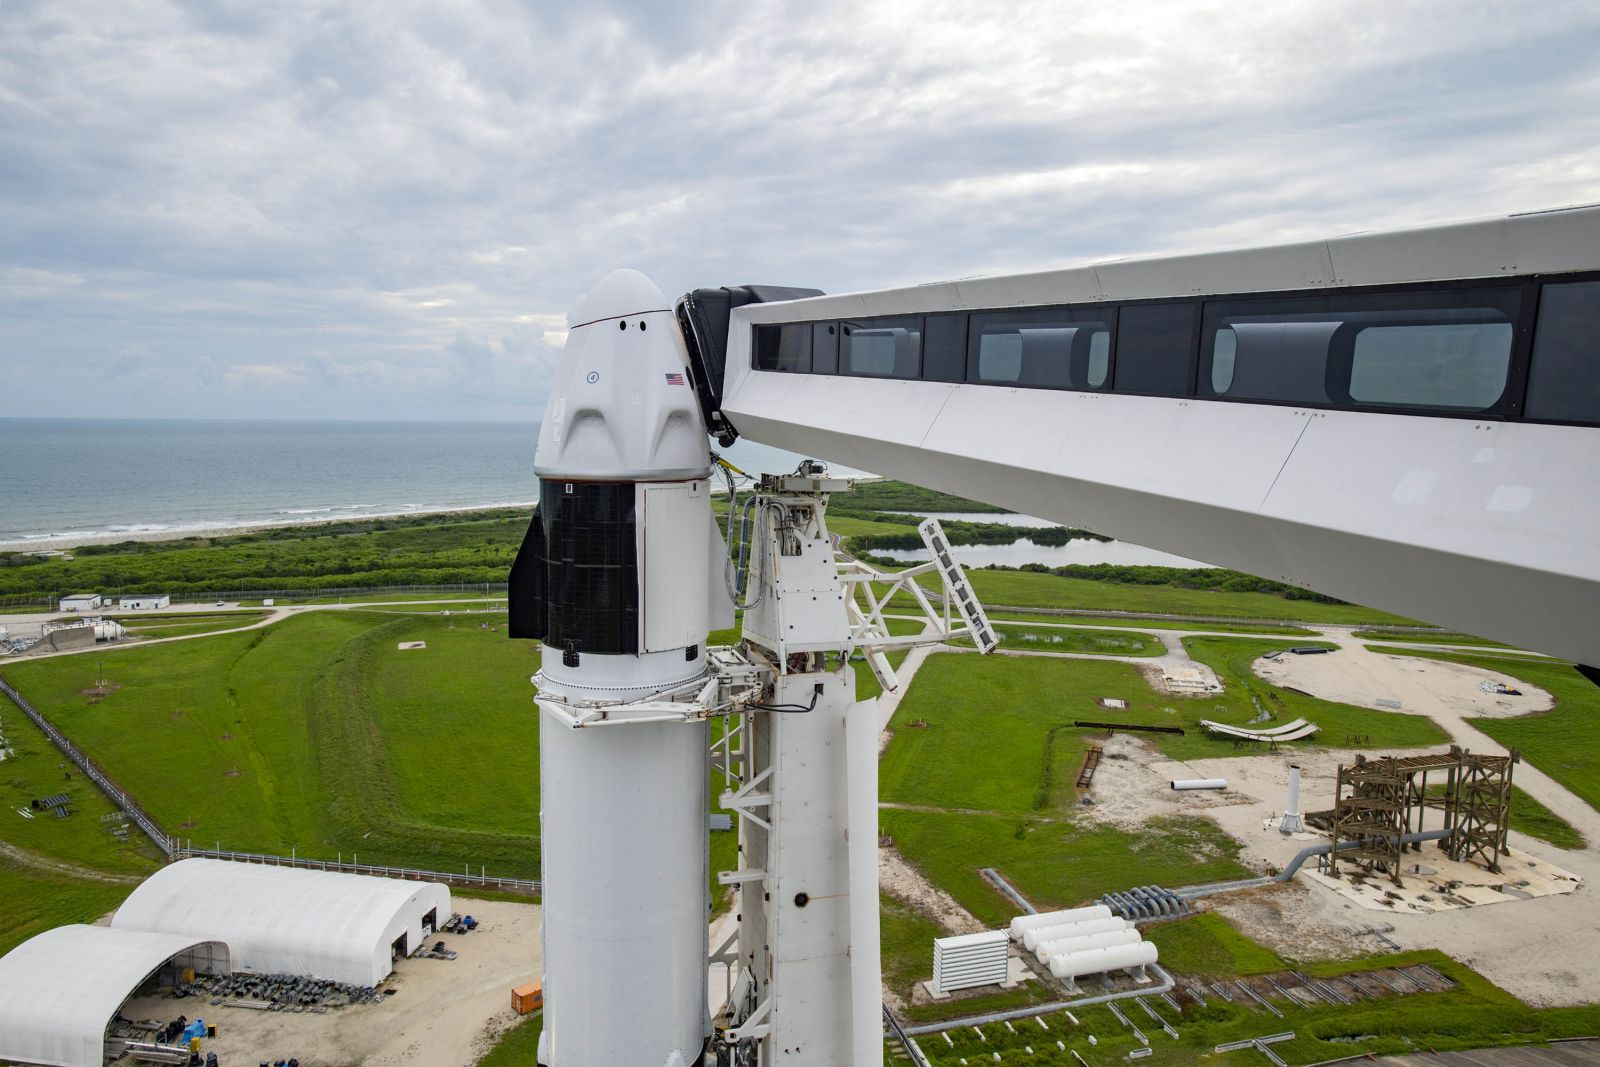 SpaceX Crew Dragon Resilience on the launch pad. Credit: SpaceX